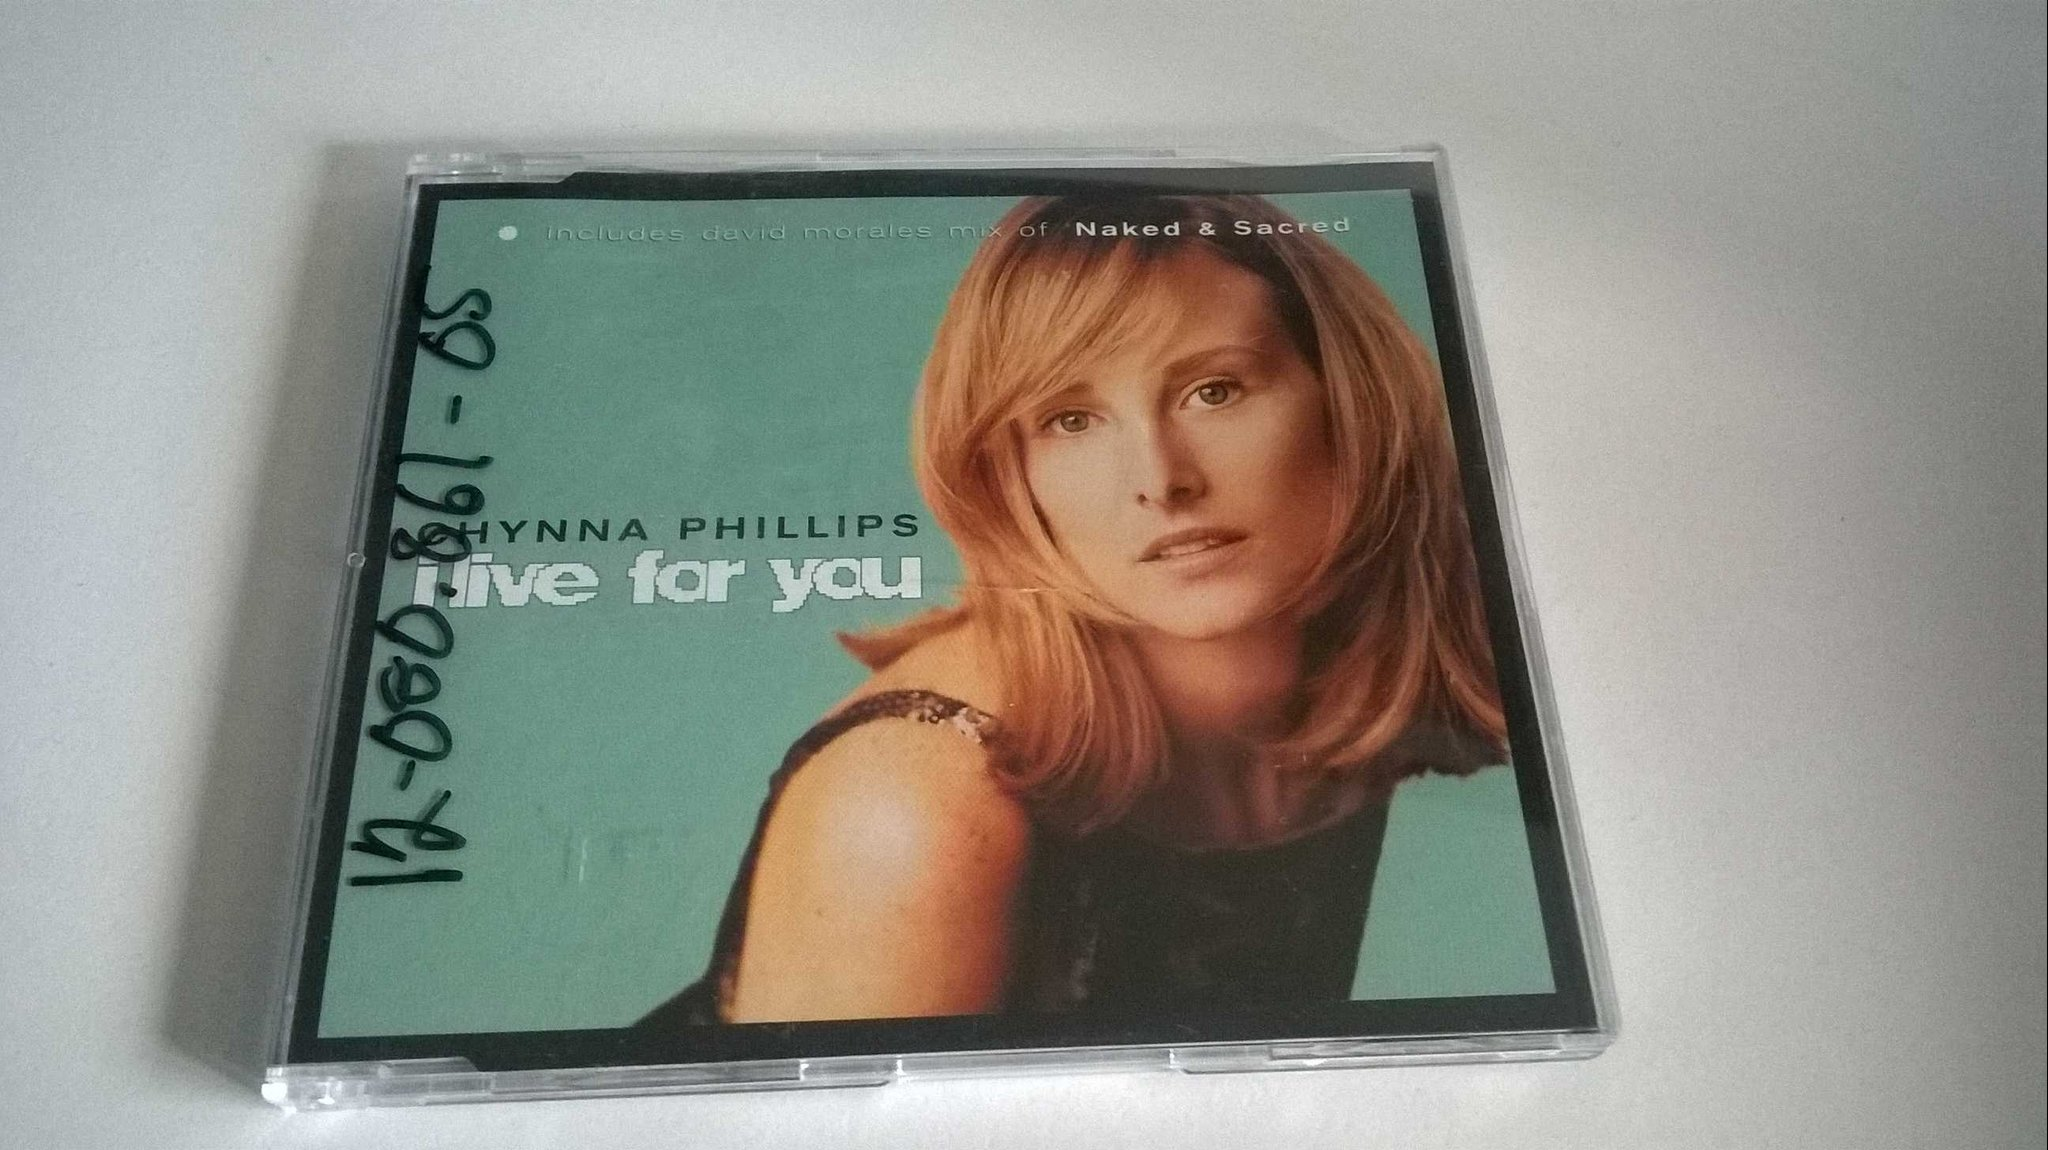 Chynna Phillips - I Live For You, (naked & secret) CD